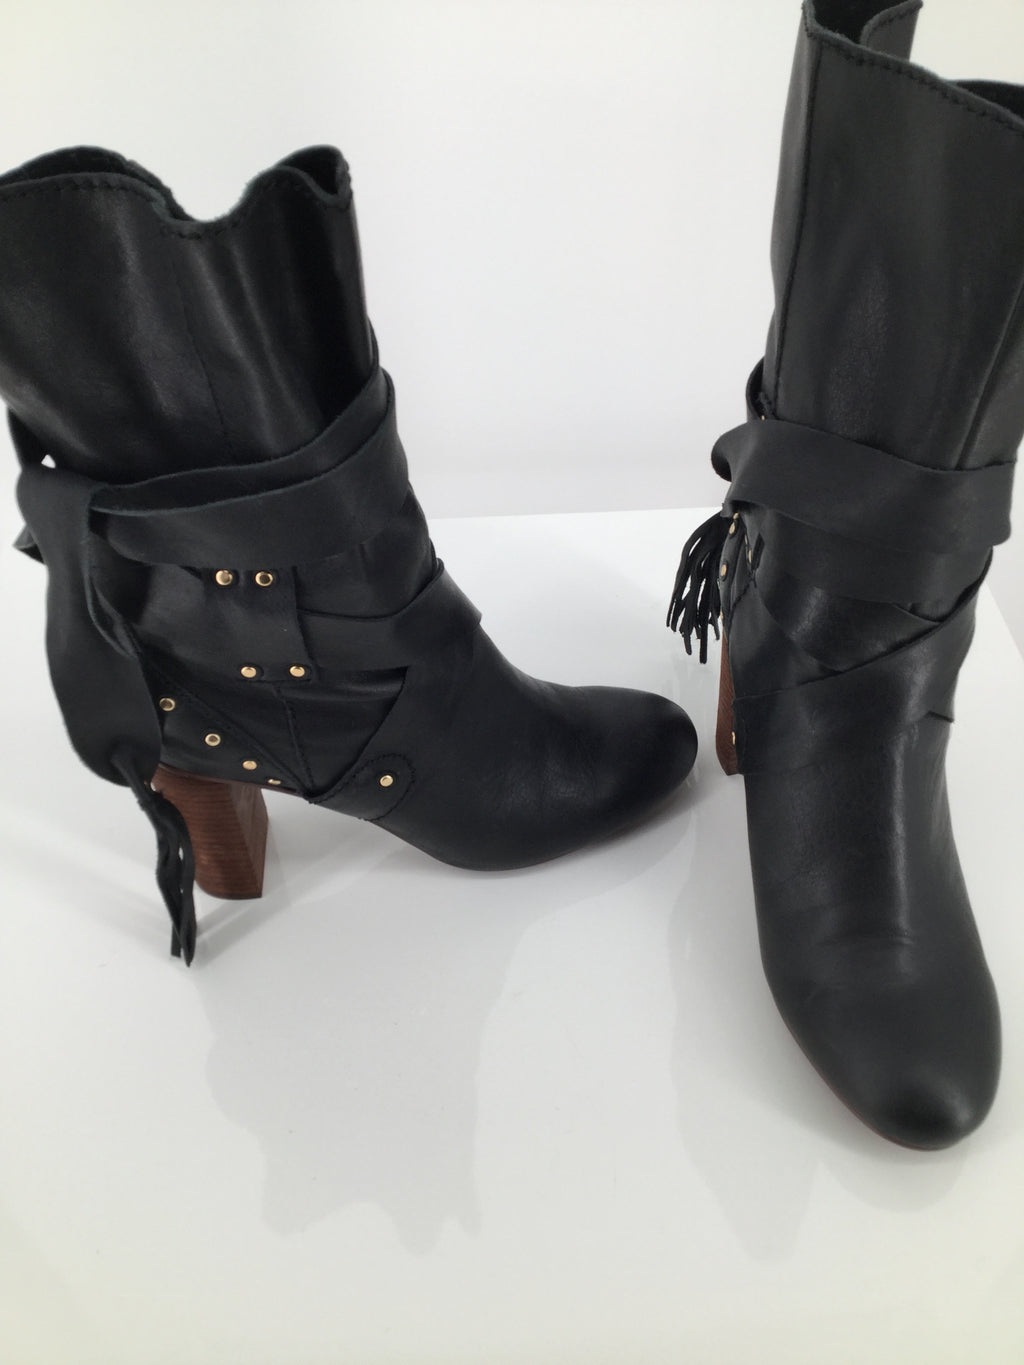 CMA BOOTS ANKLE Size:9.5